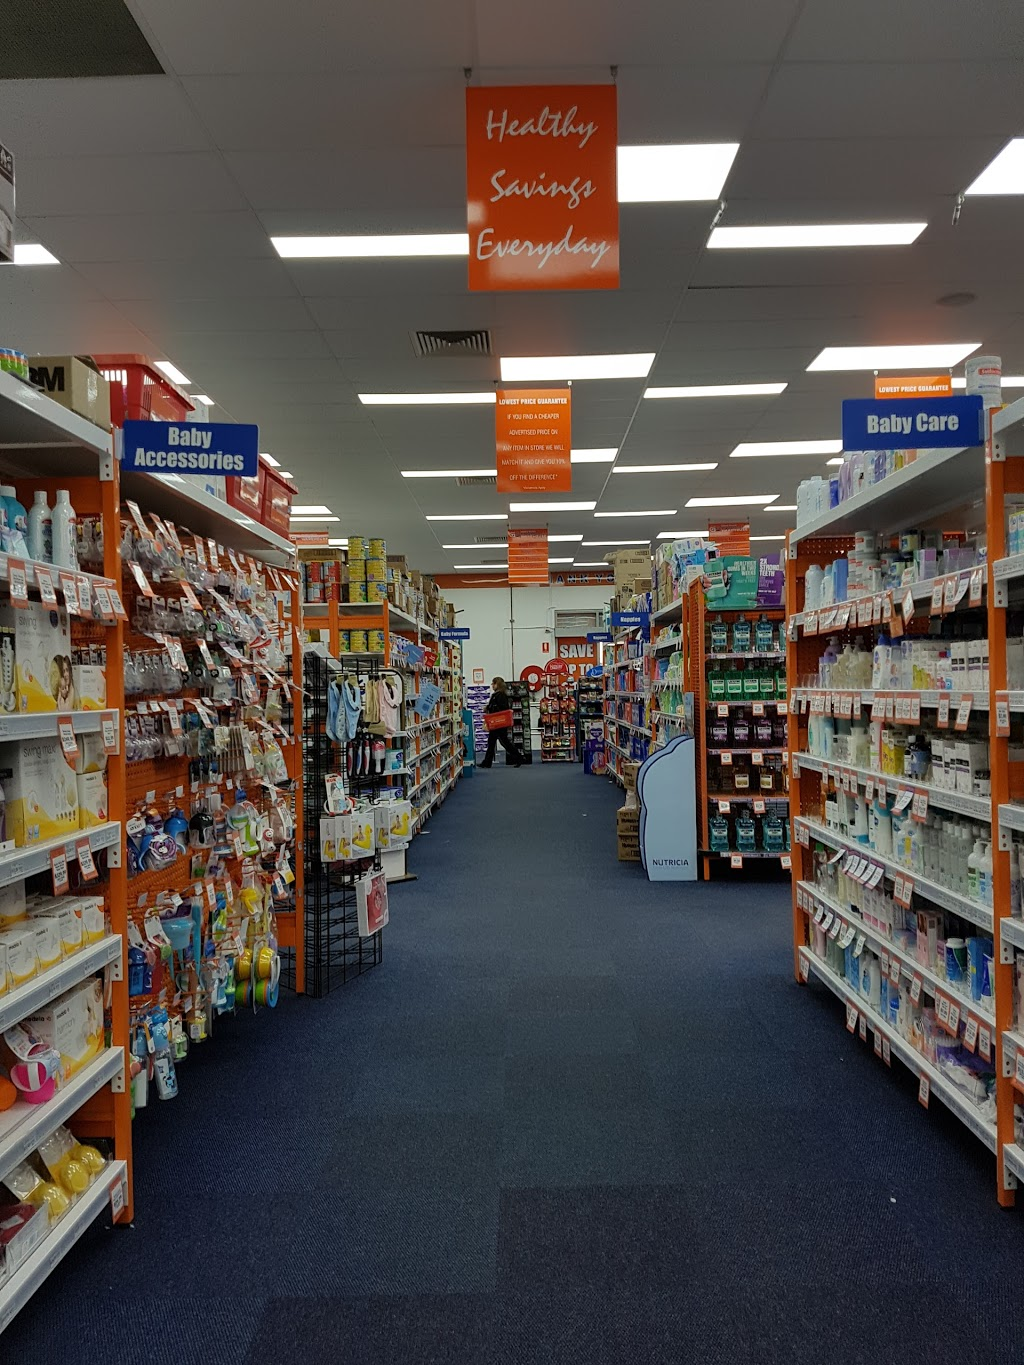 Good Price Pharmacy Warehouse McGraths Hill   pharmacy   Home Central, 10 Industry Rd, Mcgraths Hill NSW 2756, Australia   0245777200 OR +61 2 4577 7200